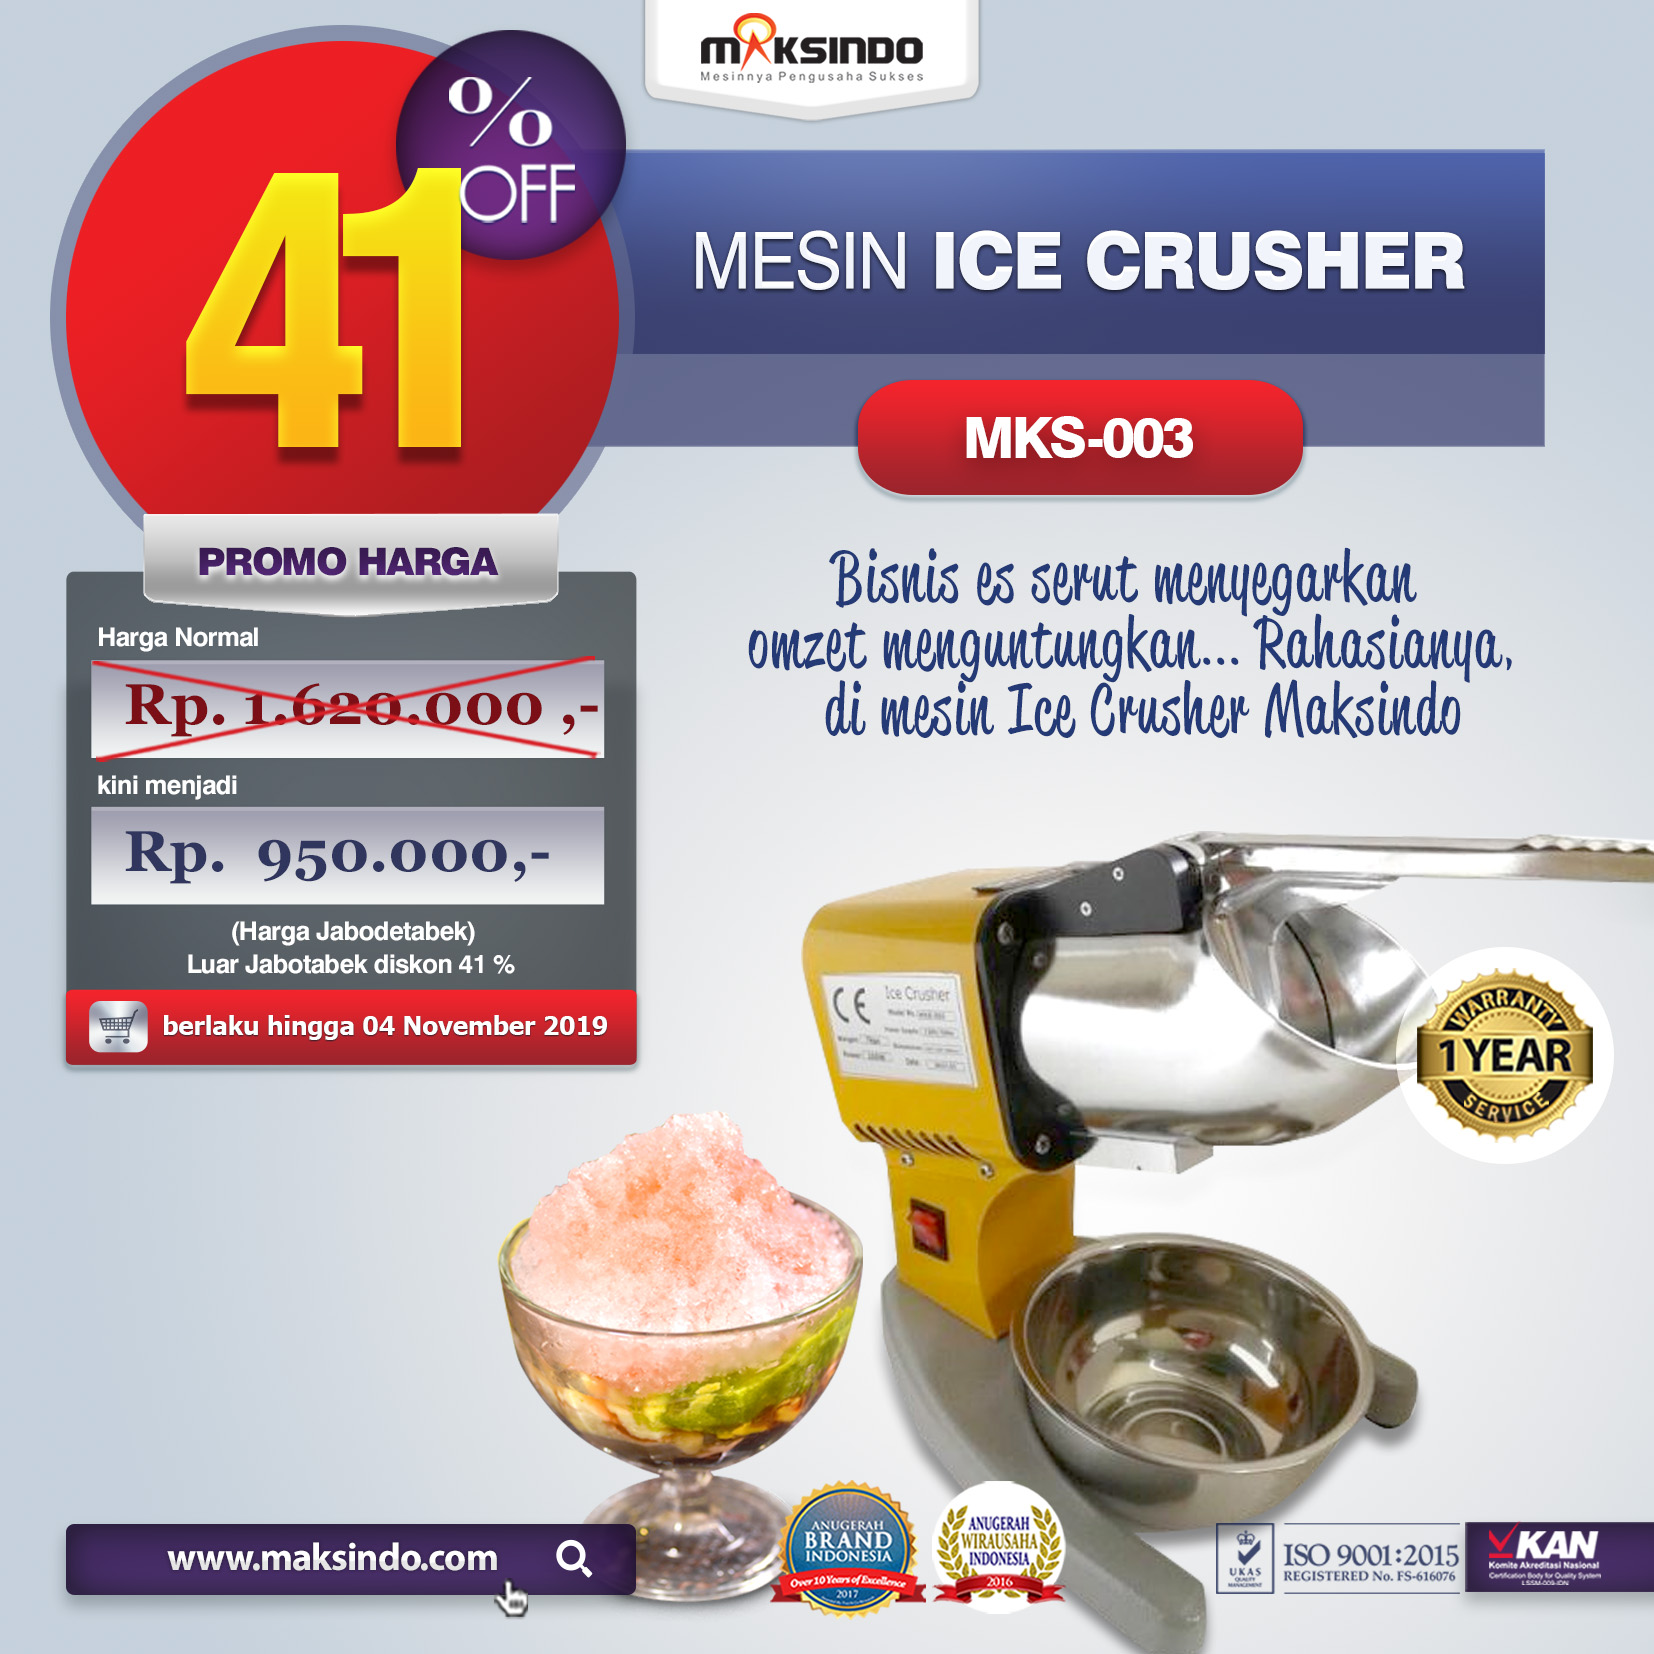 MKS 003 mesin ice crusher